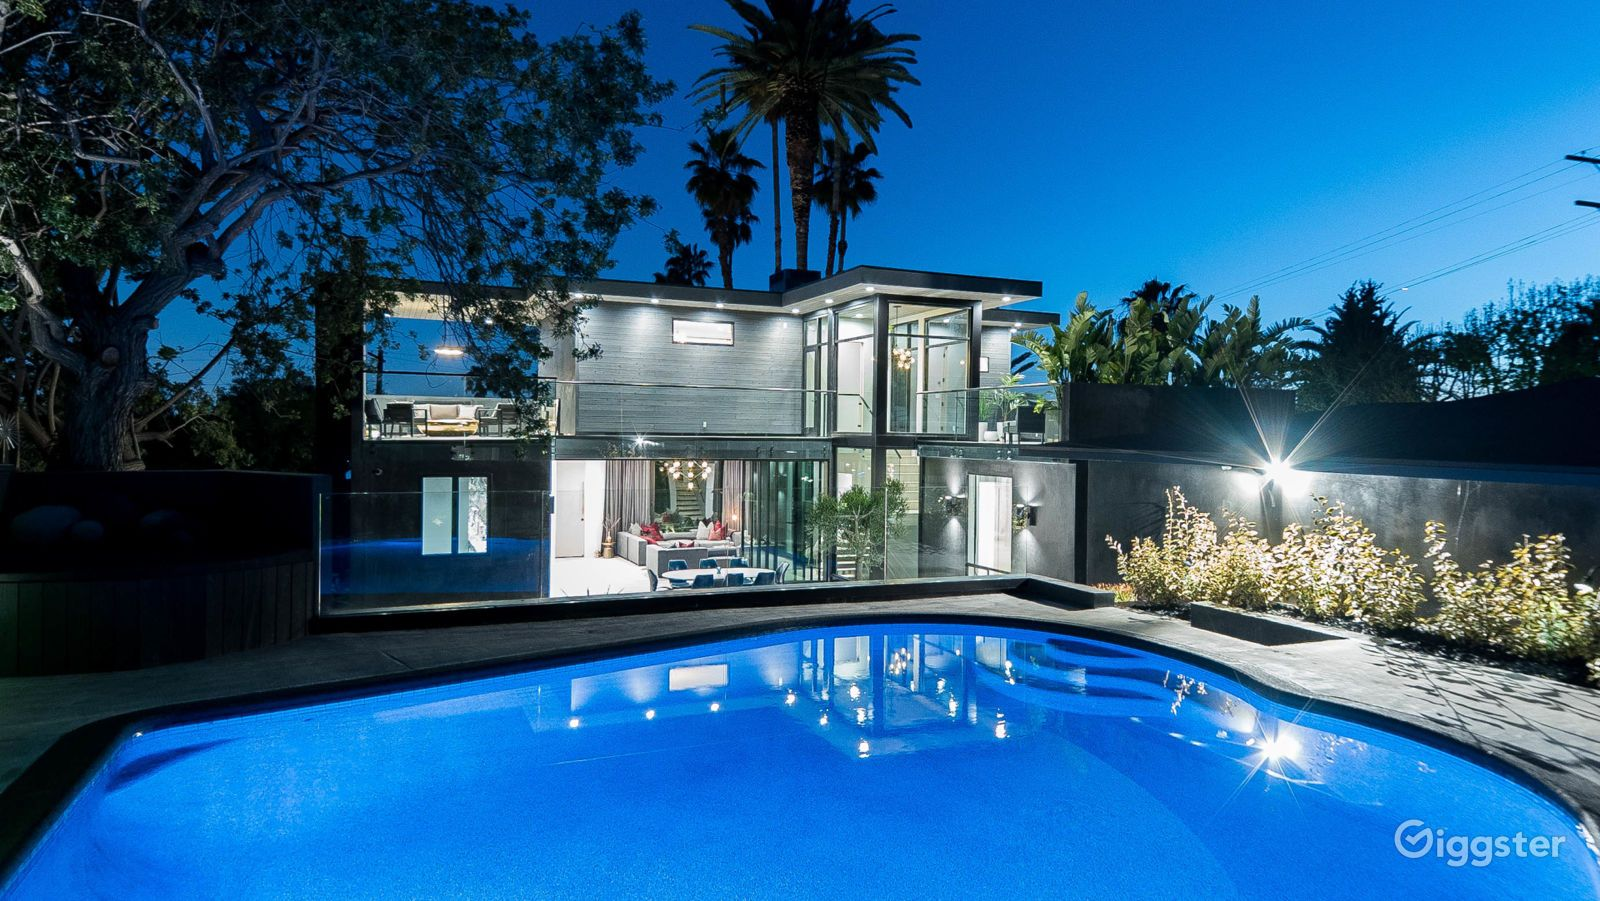 Modern Home In Hollywood Hills Los Angeles Rent This Location On Giggster Los Angeles Homes Japanese Architecture Luxury Homes